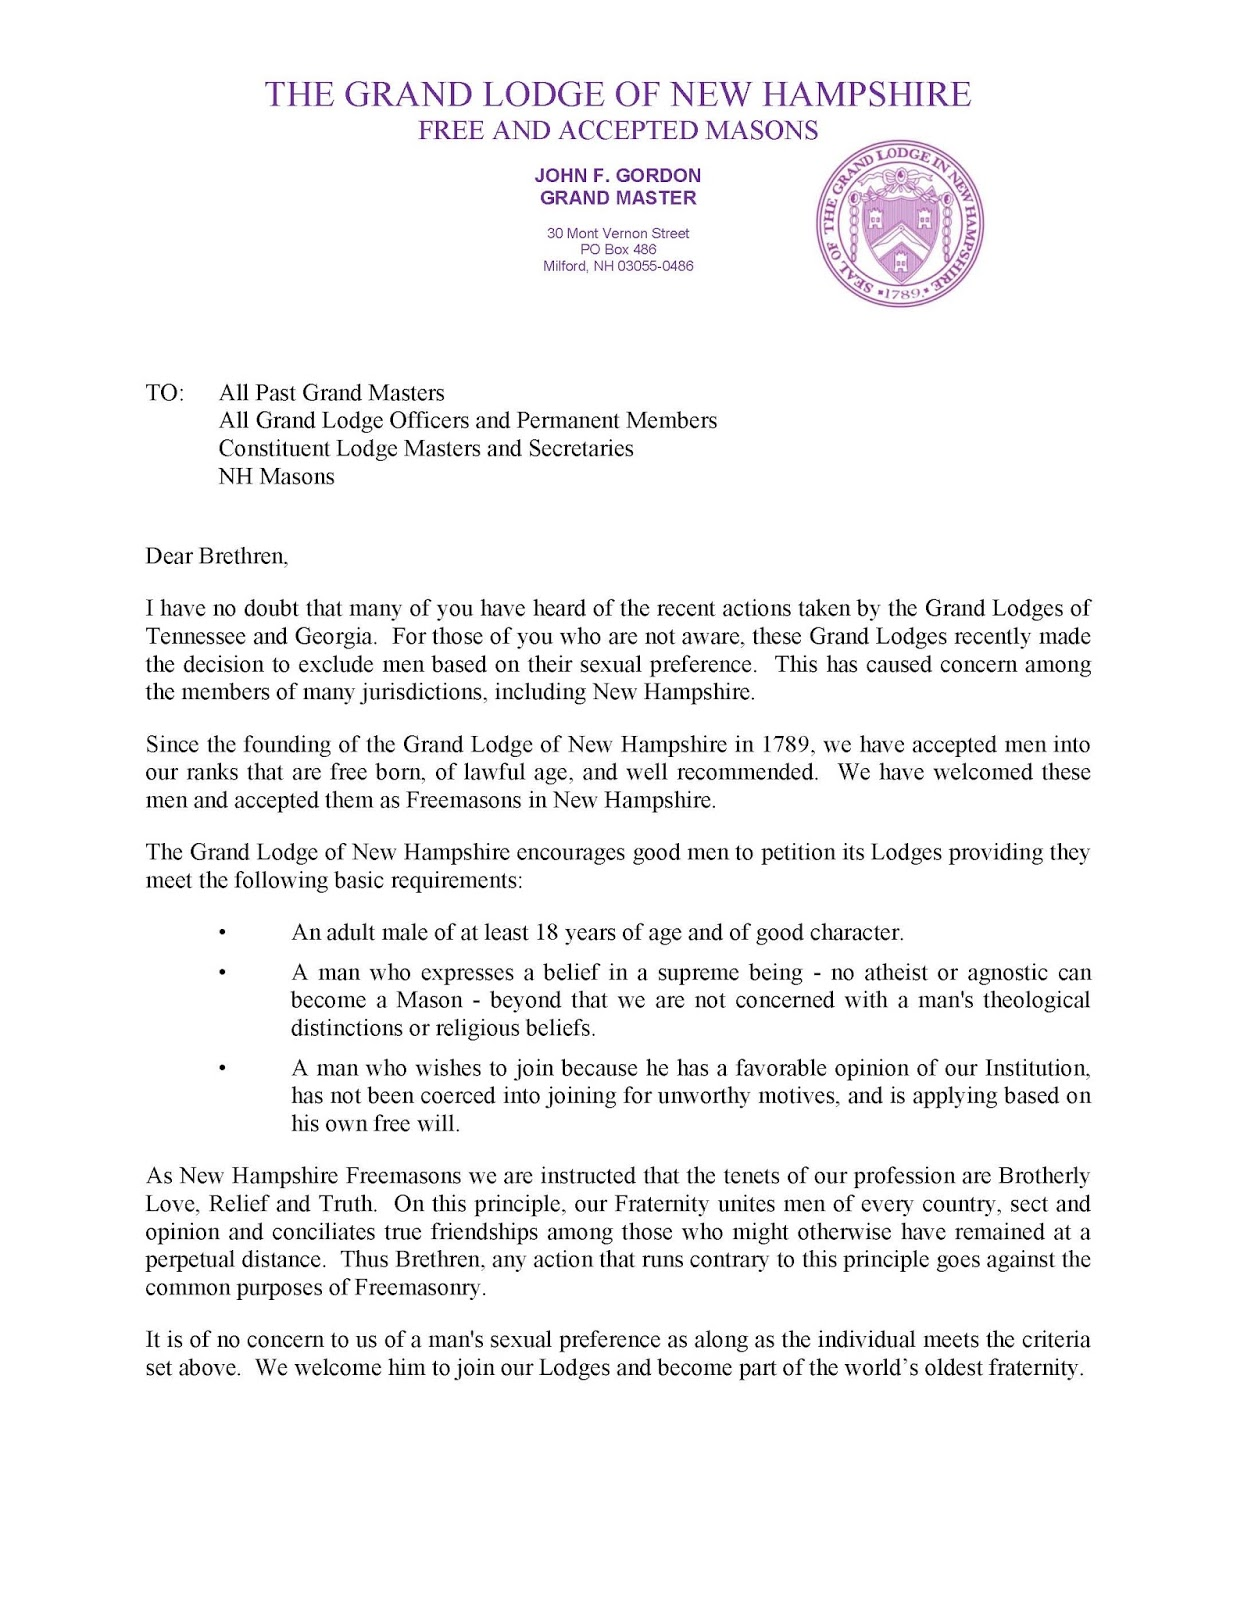 The Gm Of The Grand Lodge Of New Hampshire Issued A Statement On The Issue  On Howto